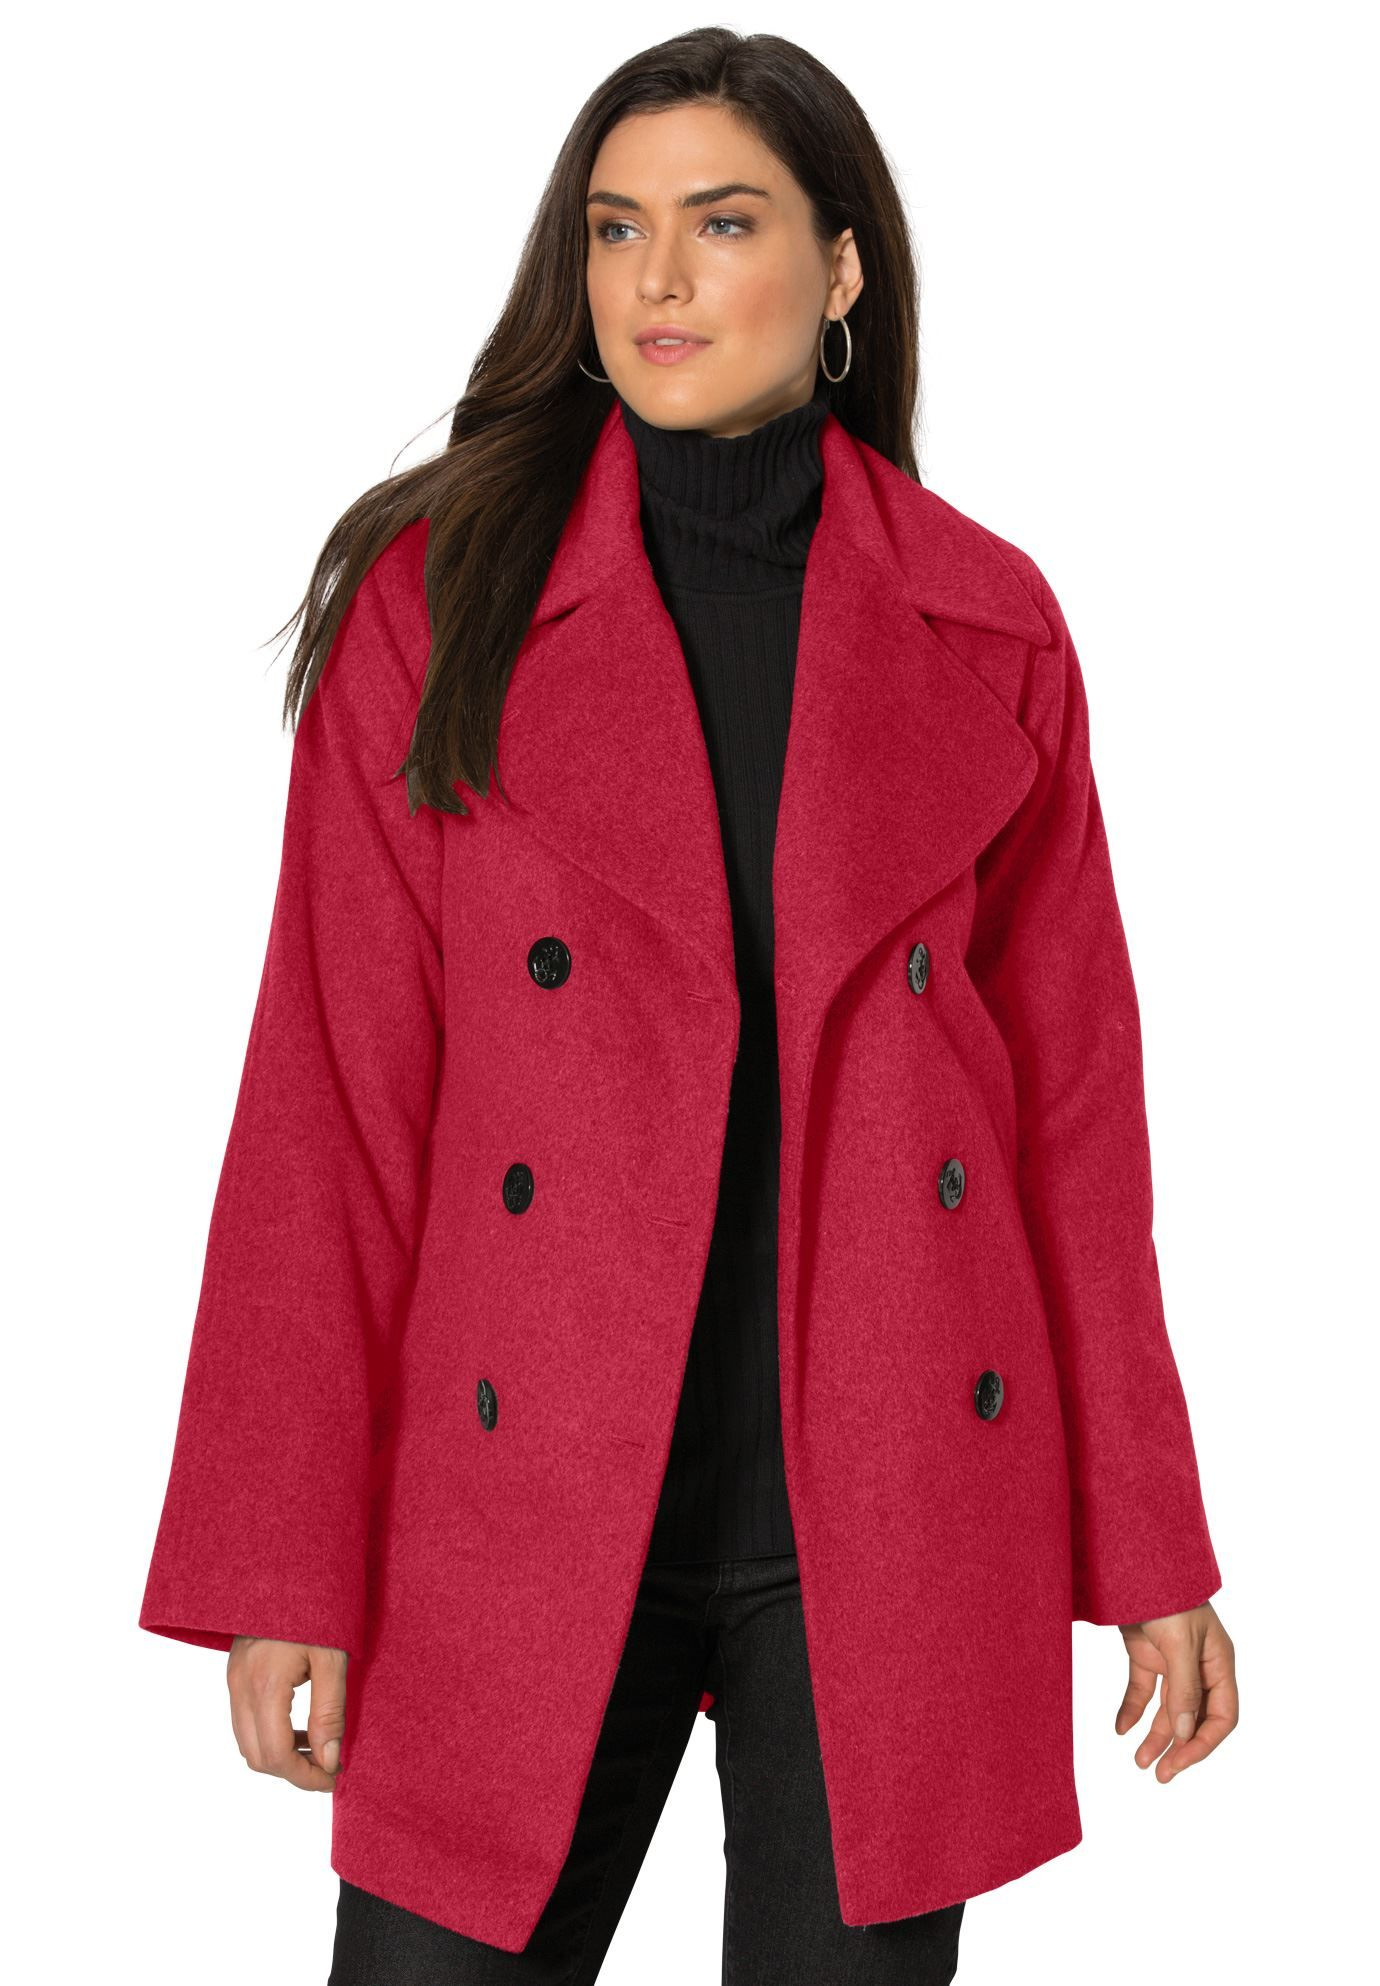 edae66d66c1 Our classic plus size peacoat is the perfect top layer for modern polish  all winter long!  fashion  style